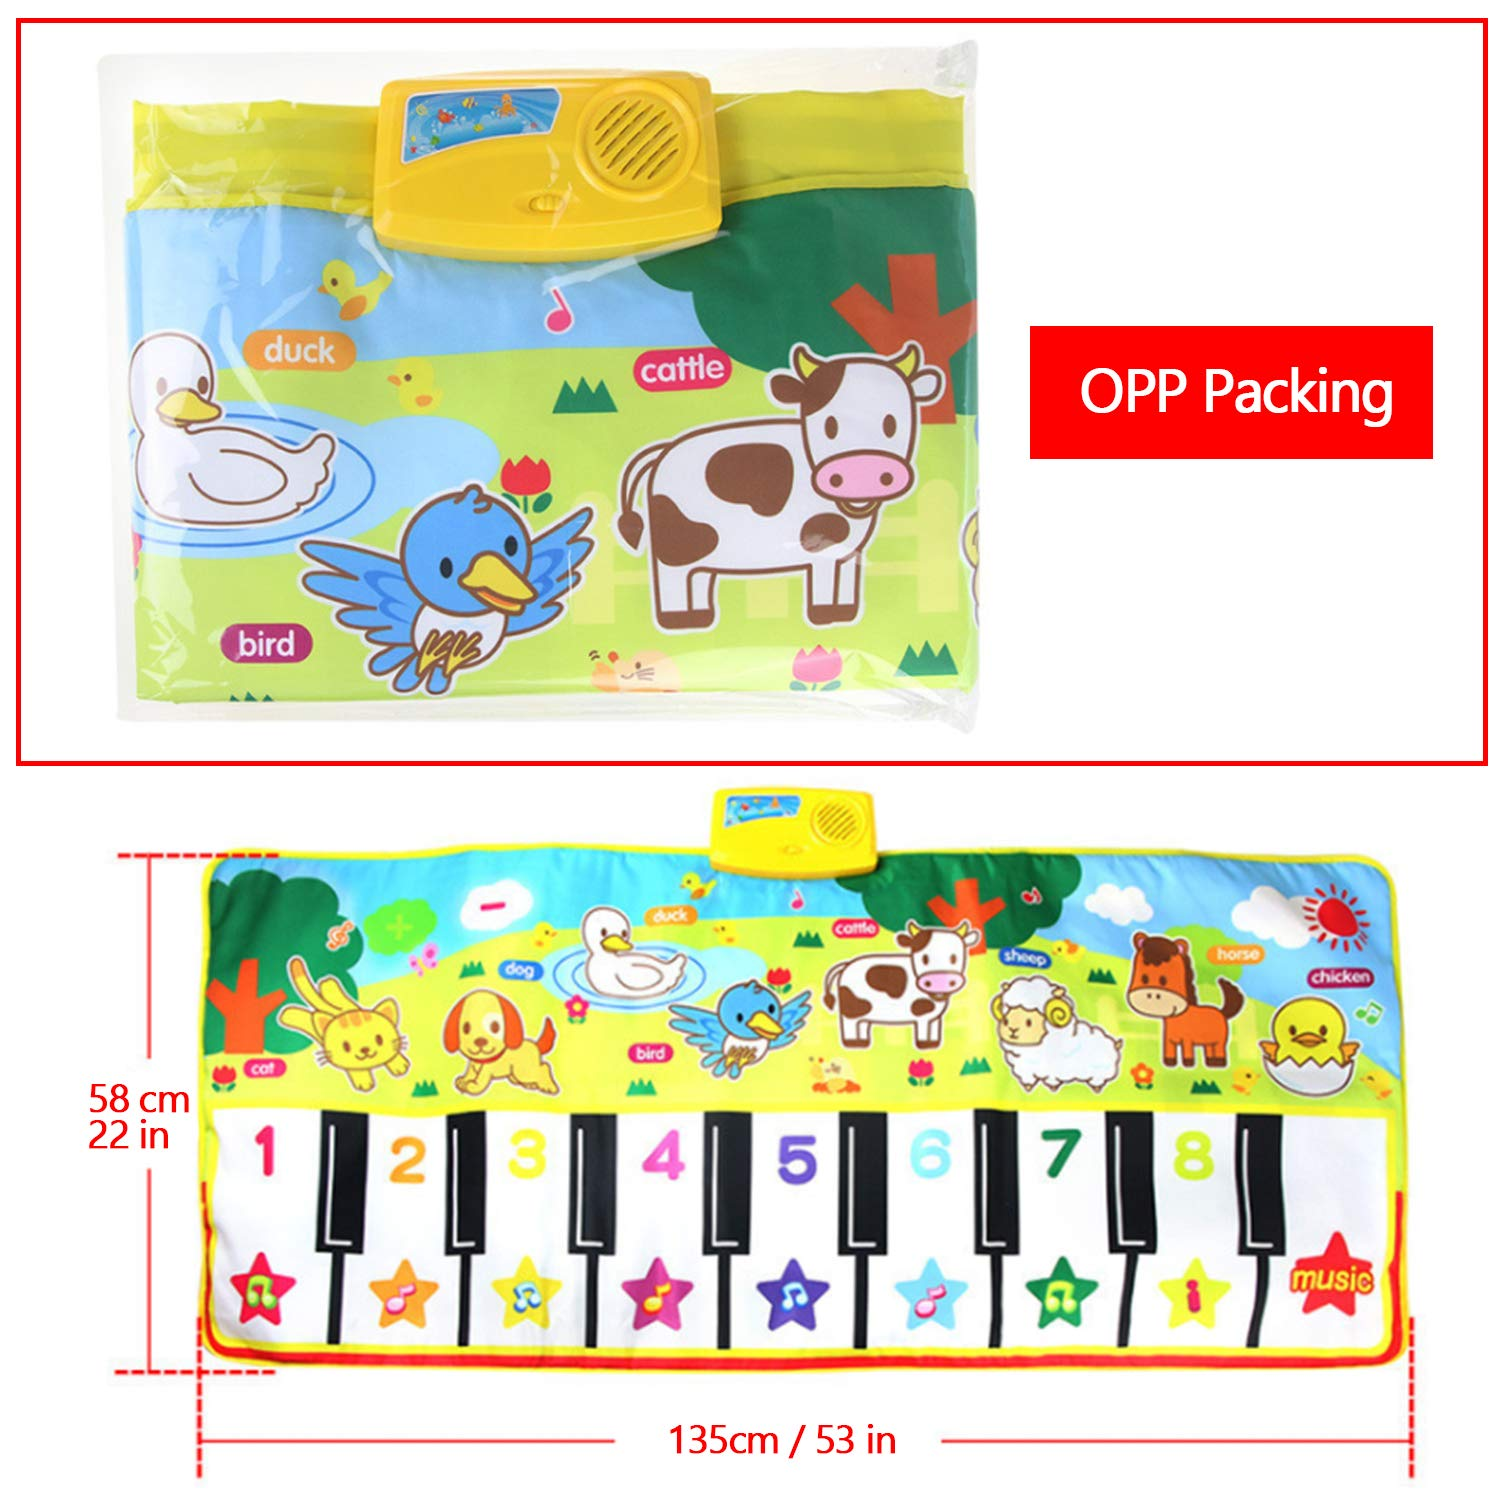 Kids Children Musical Mats, Musical Piano Dance Mat, Animal Carpet Blanket Touch Play Keyboard Playmat with 8 Animals Sounds 16 Musical Keys Educational Toy for Boys Girls Baby Toddler (135 58 cm)